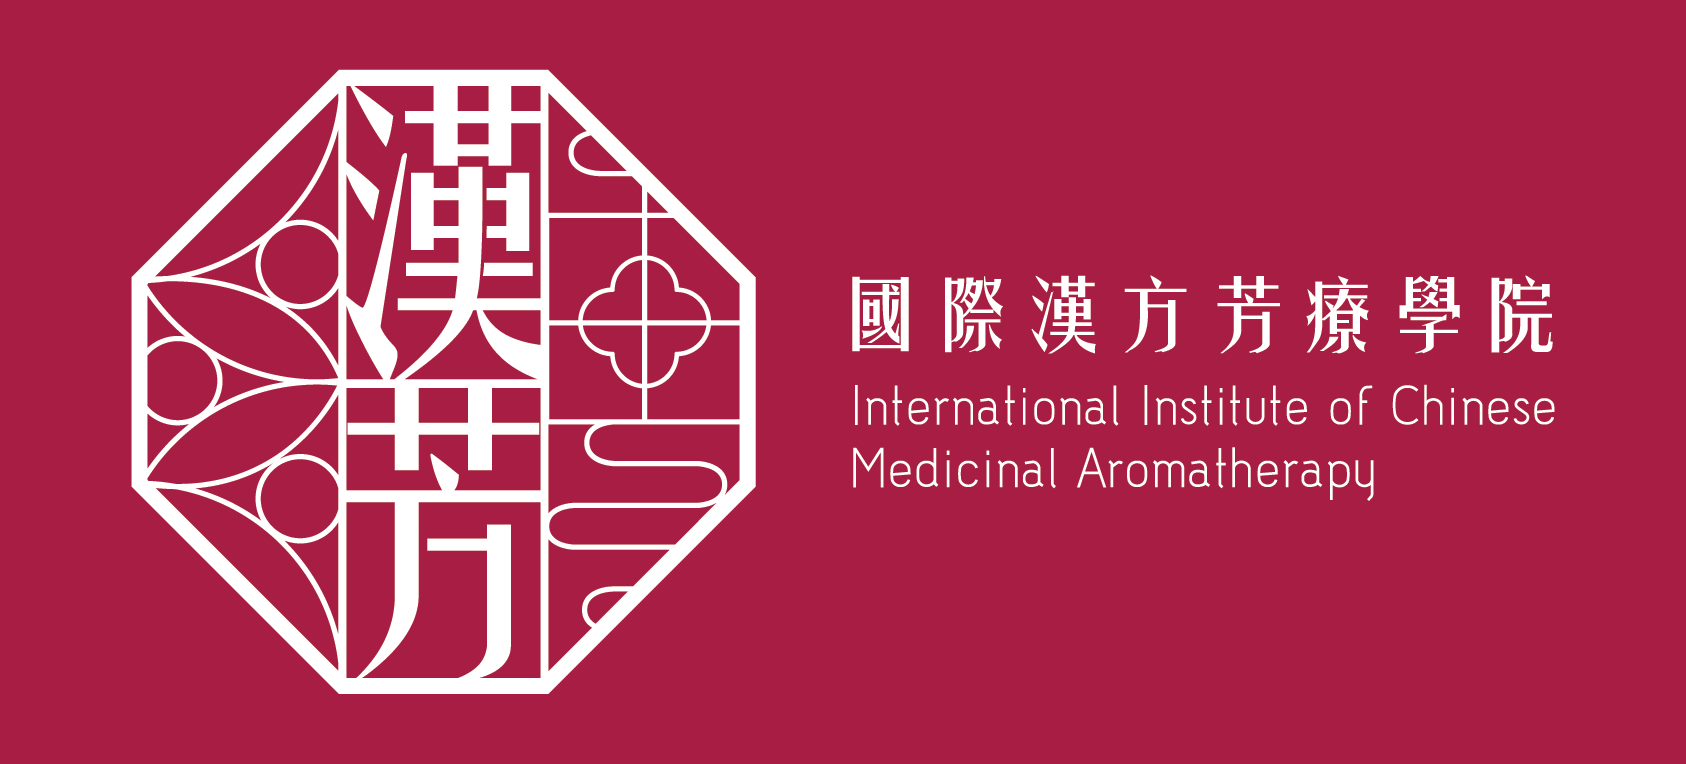 International Institution of Chinese Medicinal Aromatherapy